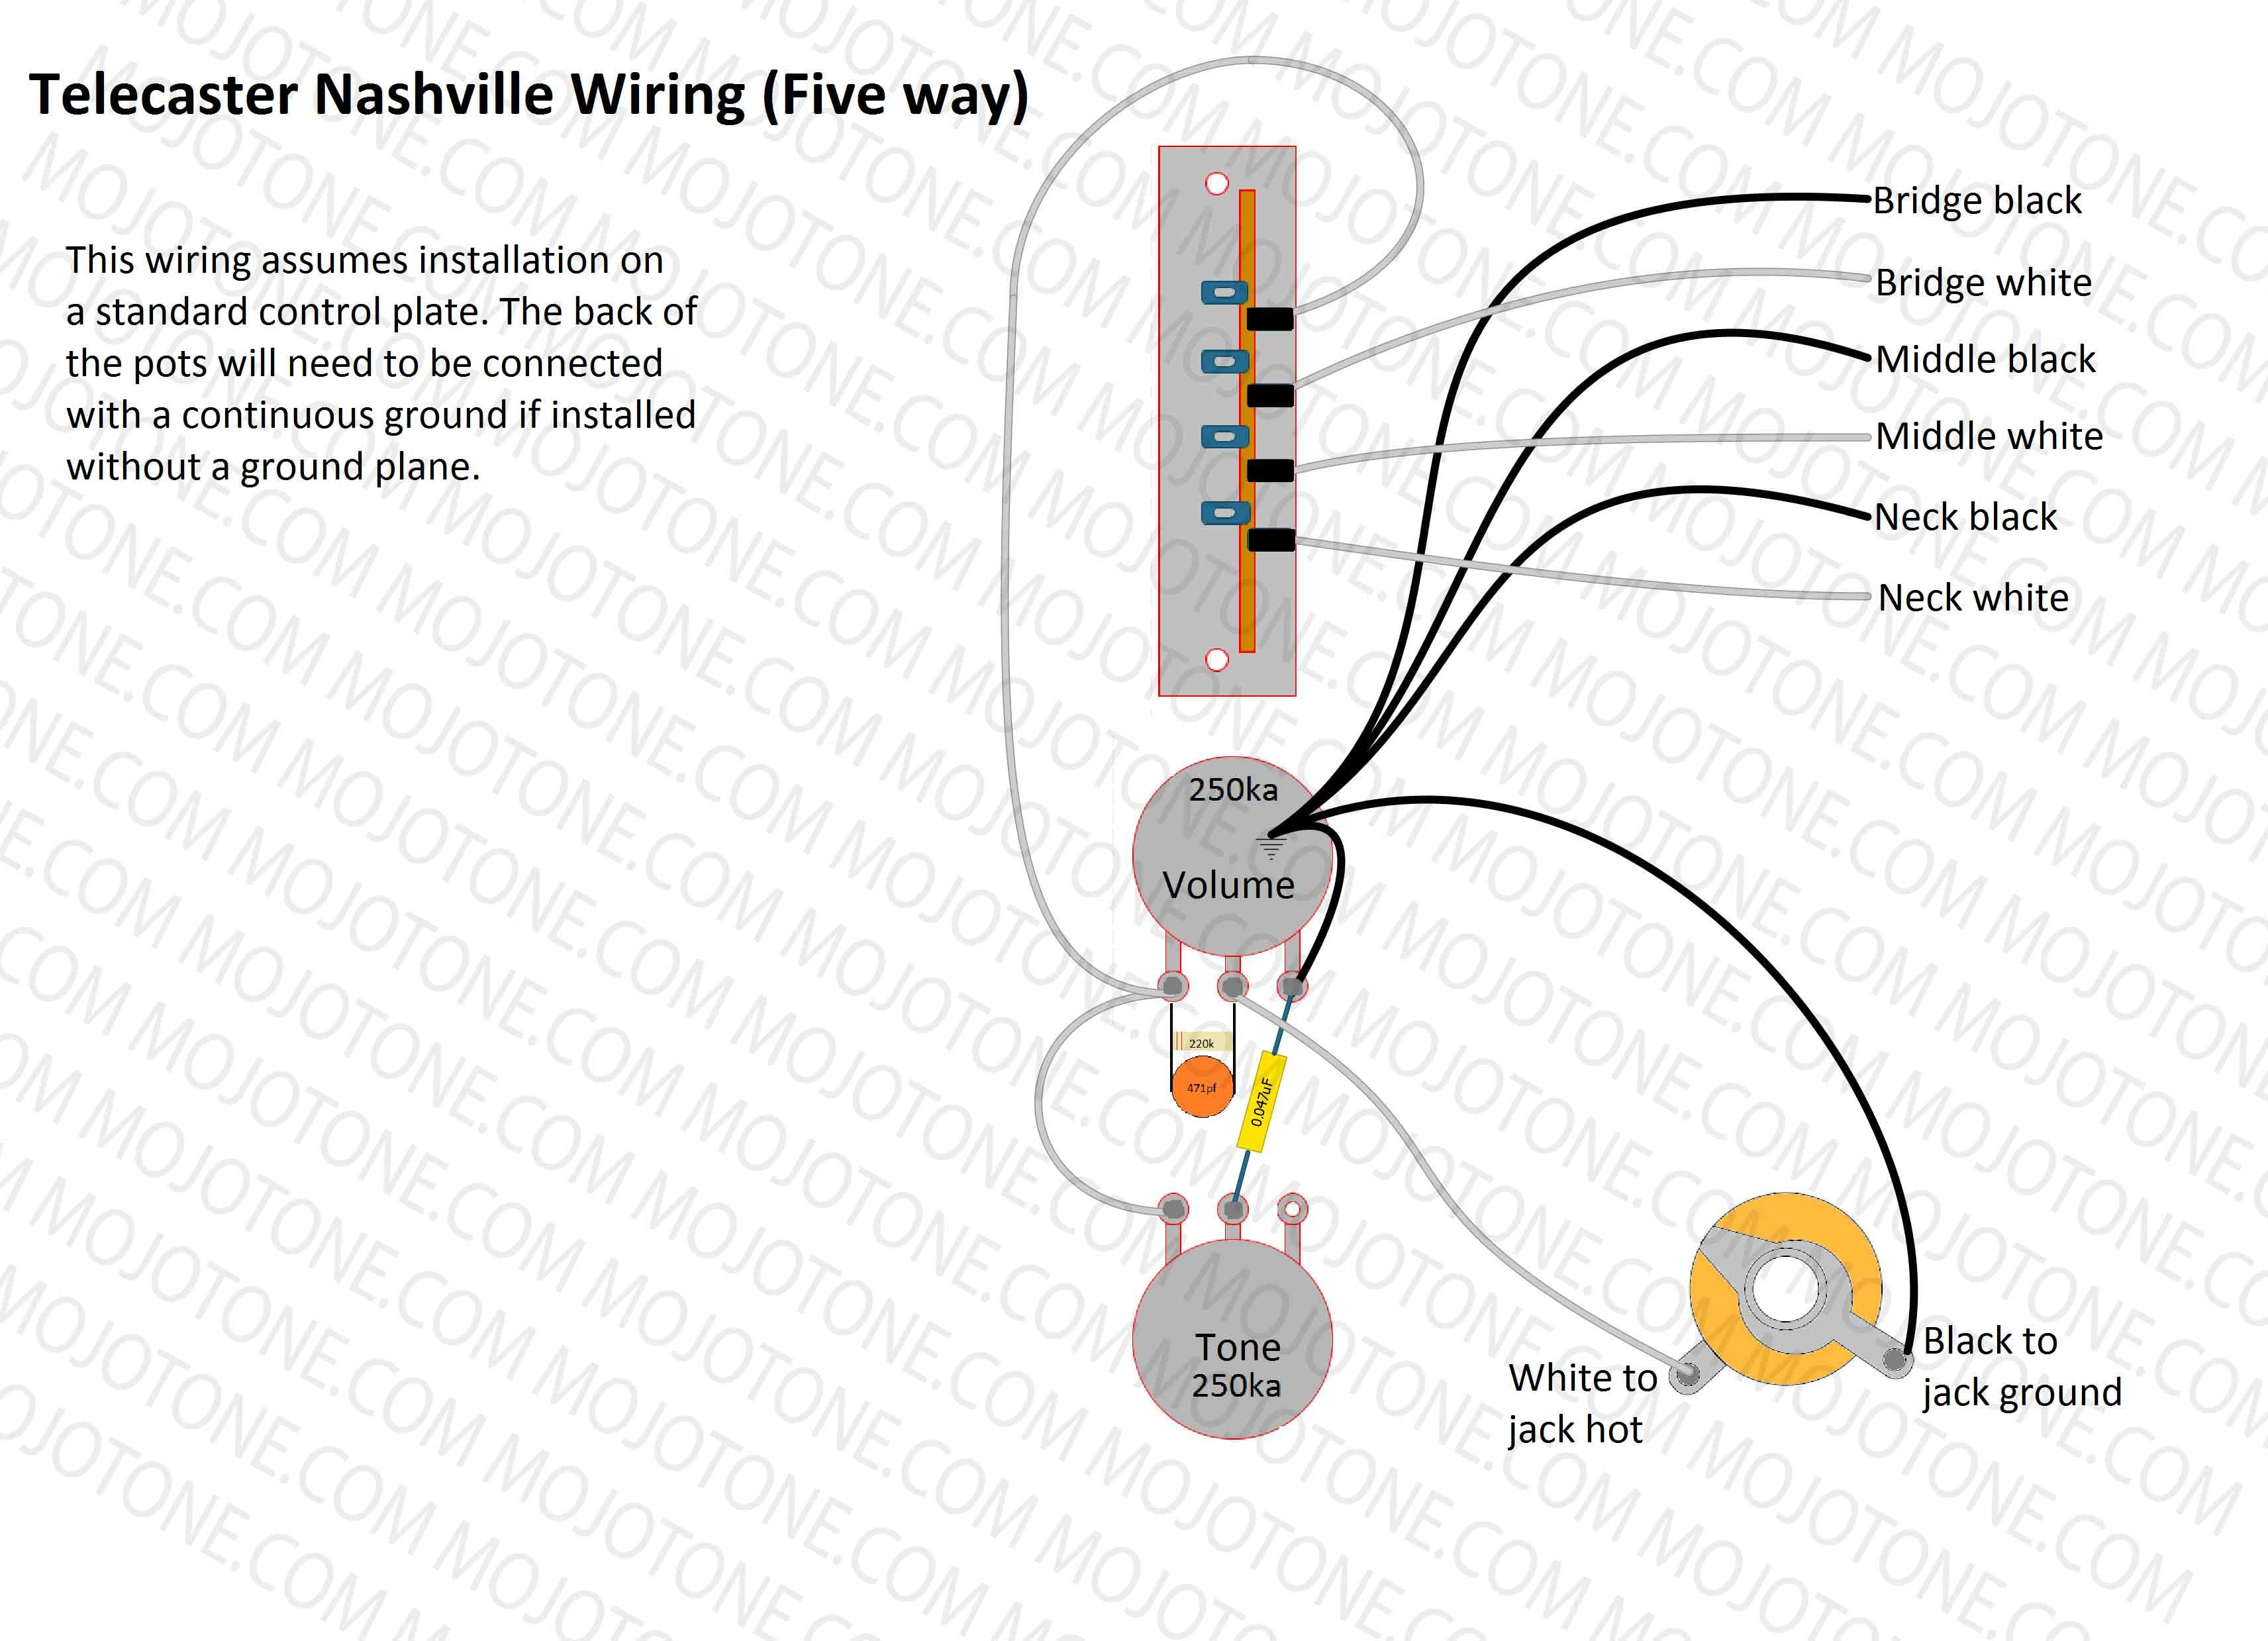 Telecaster Nashville Wiring Diagram | Telecasters in 2019